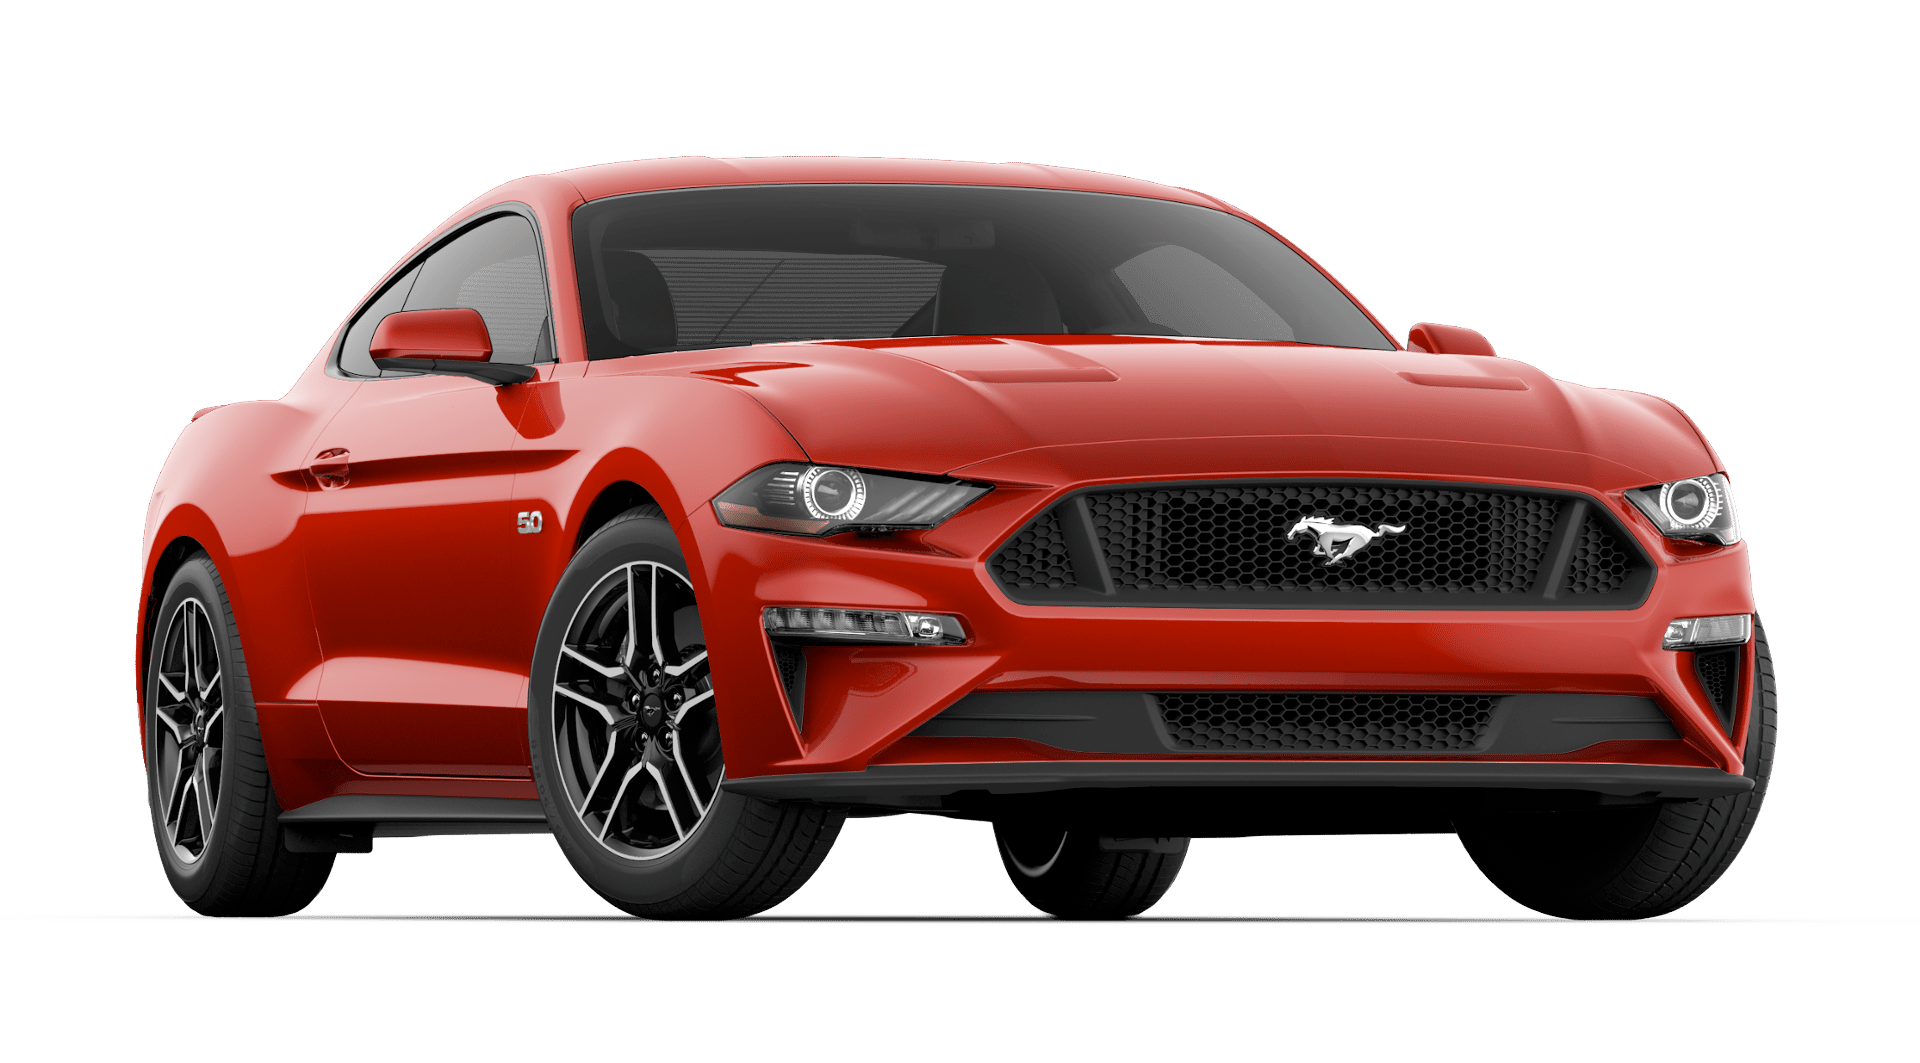 2018 Ford Mustang GT - Shown